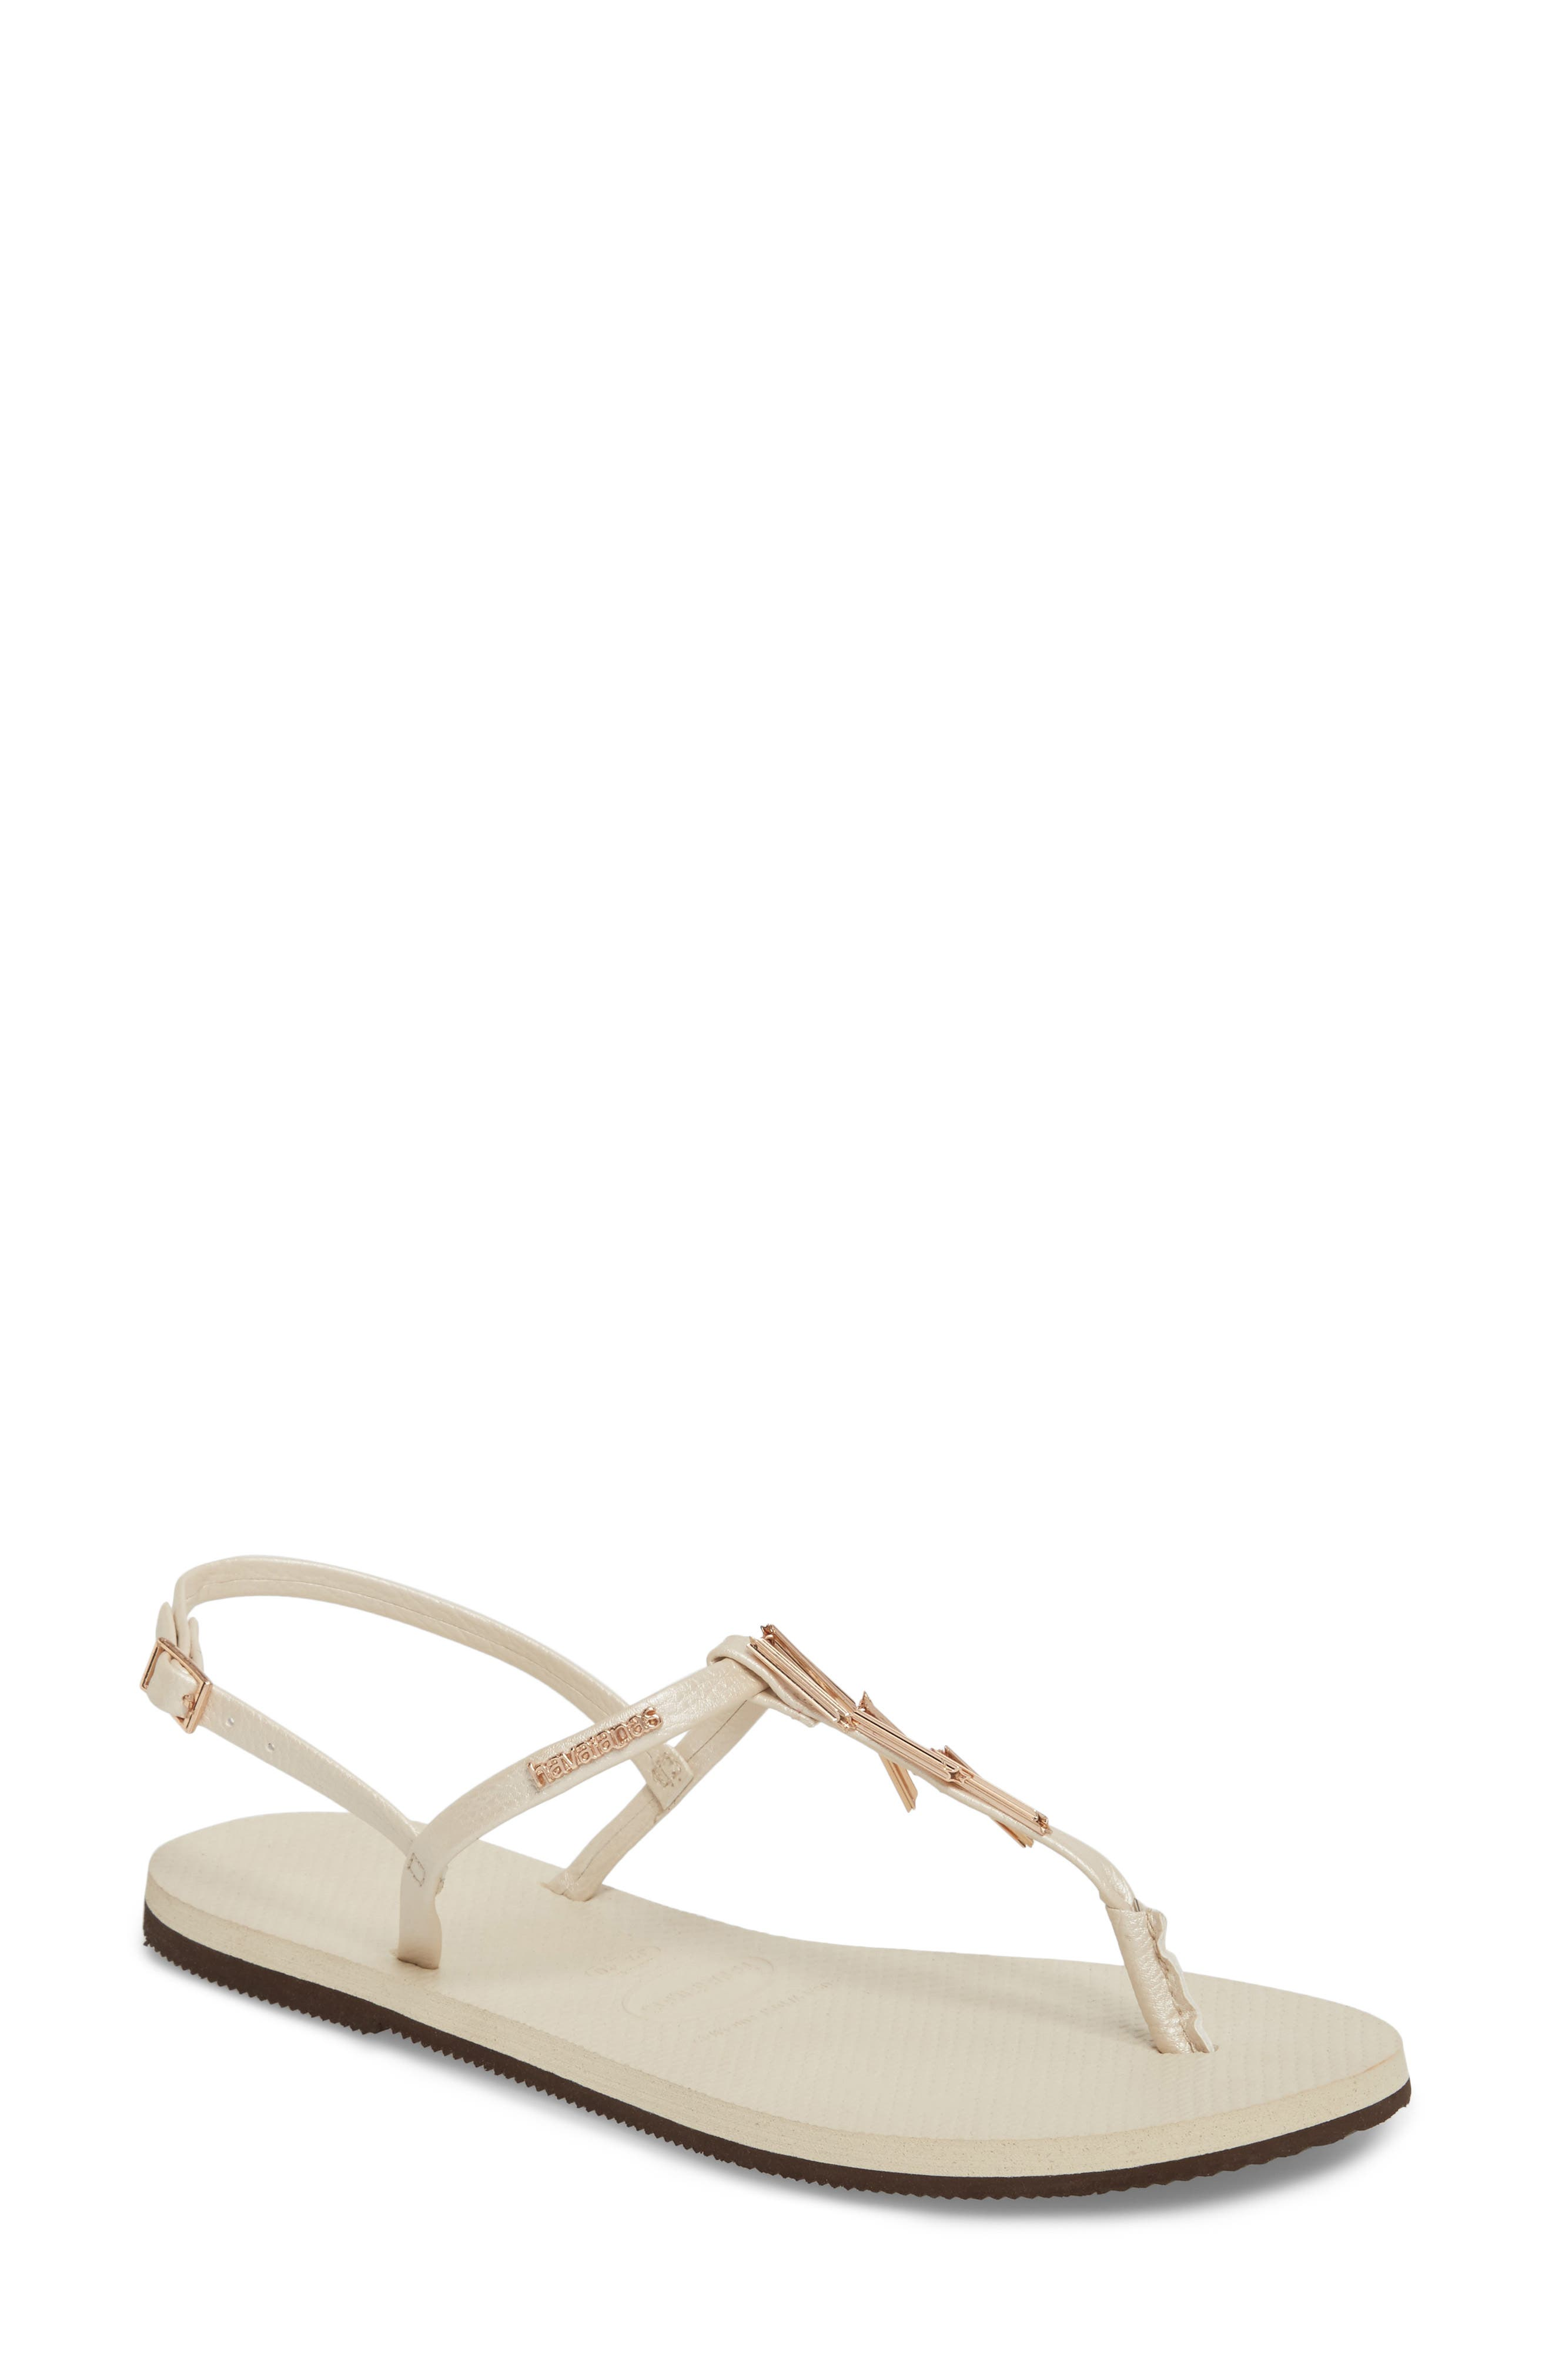 Alternate Image 1 Selected - Havaianas You Riviera Embellished Sandal (Women)